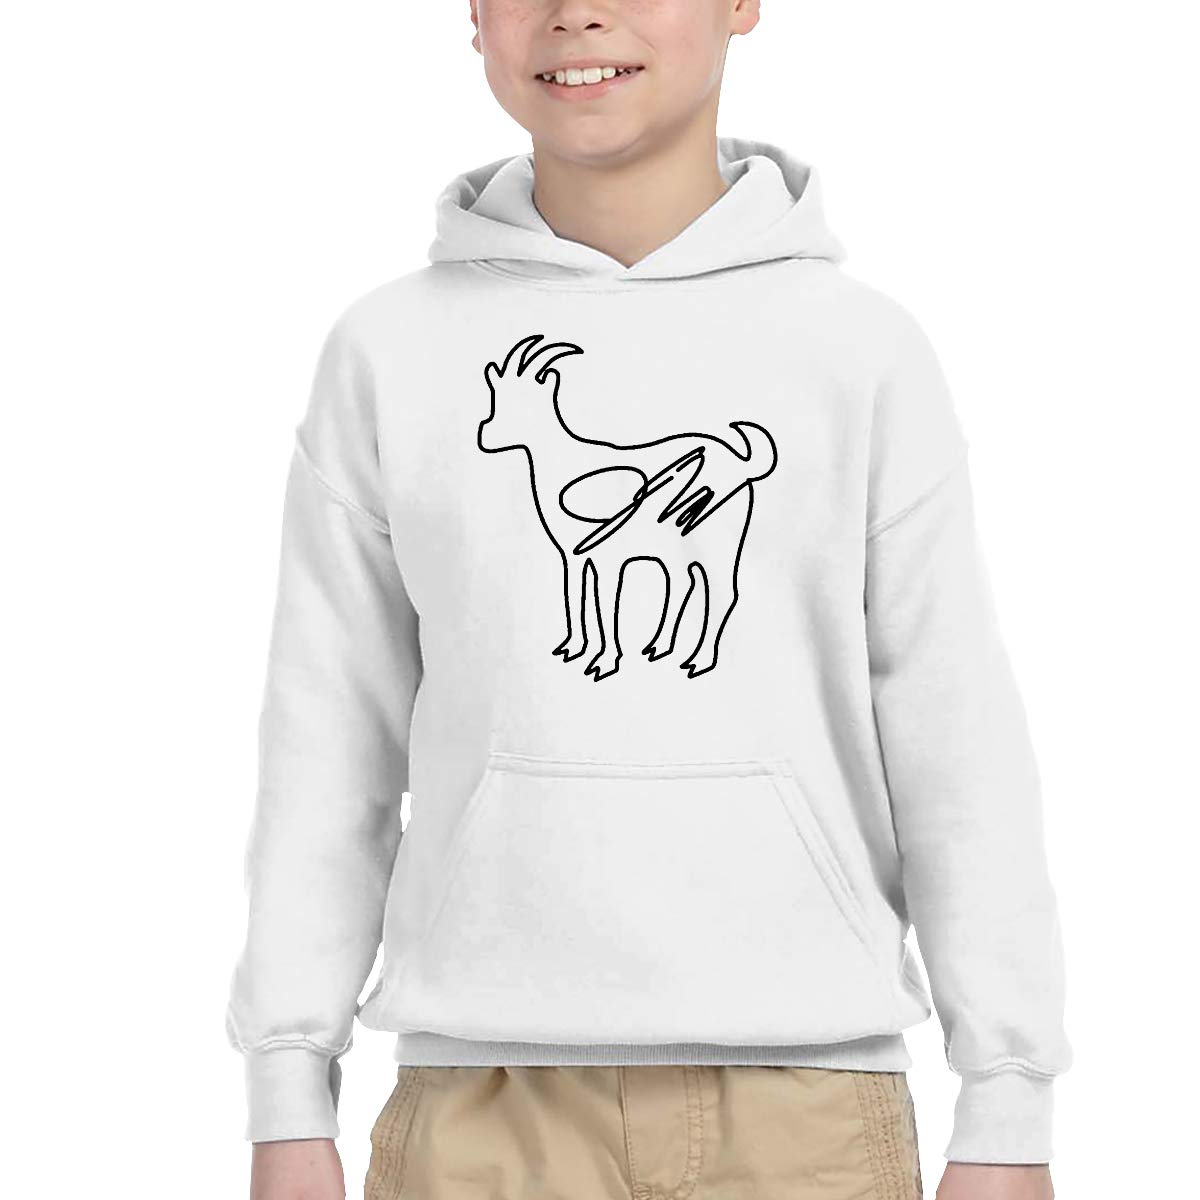 2-6 Year Old Childrens Hooded Pocket Sweater Classical Elegance and Originality Erika Costell Logo White